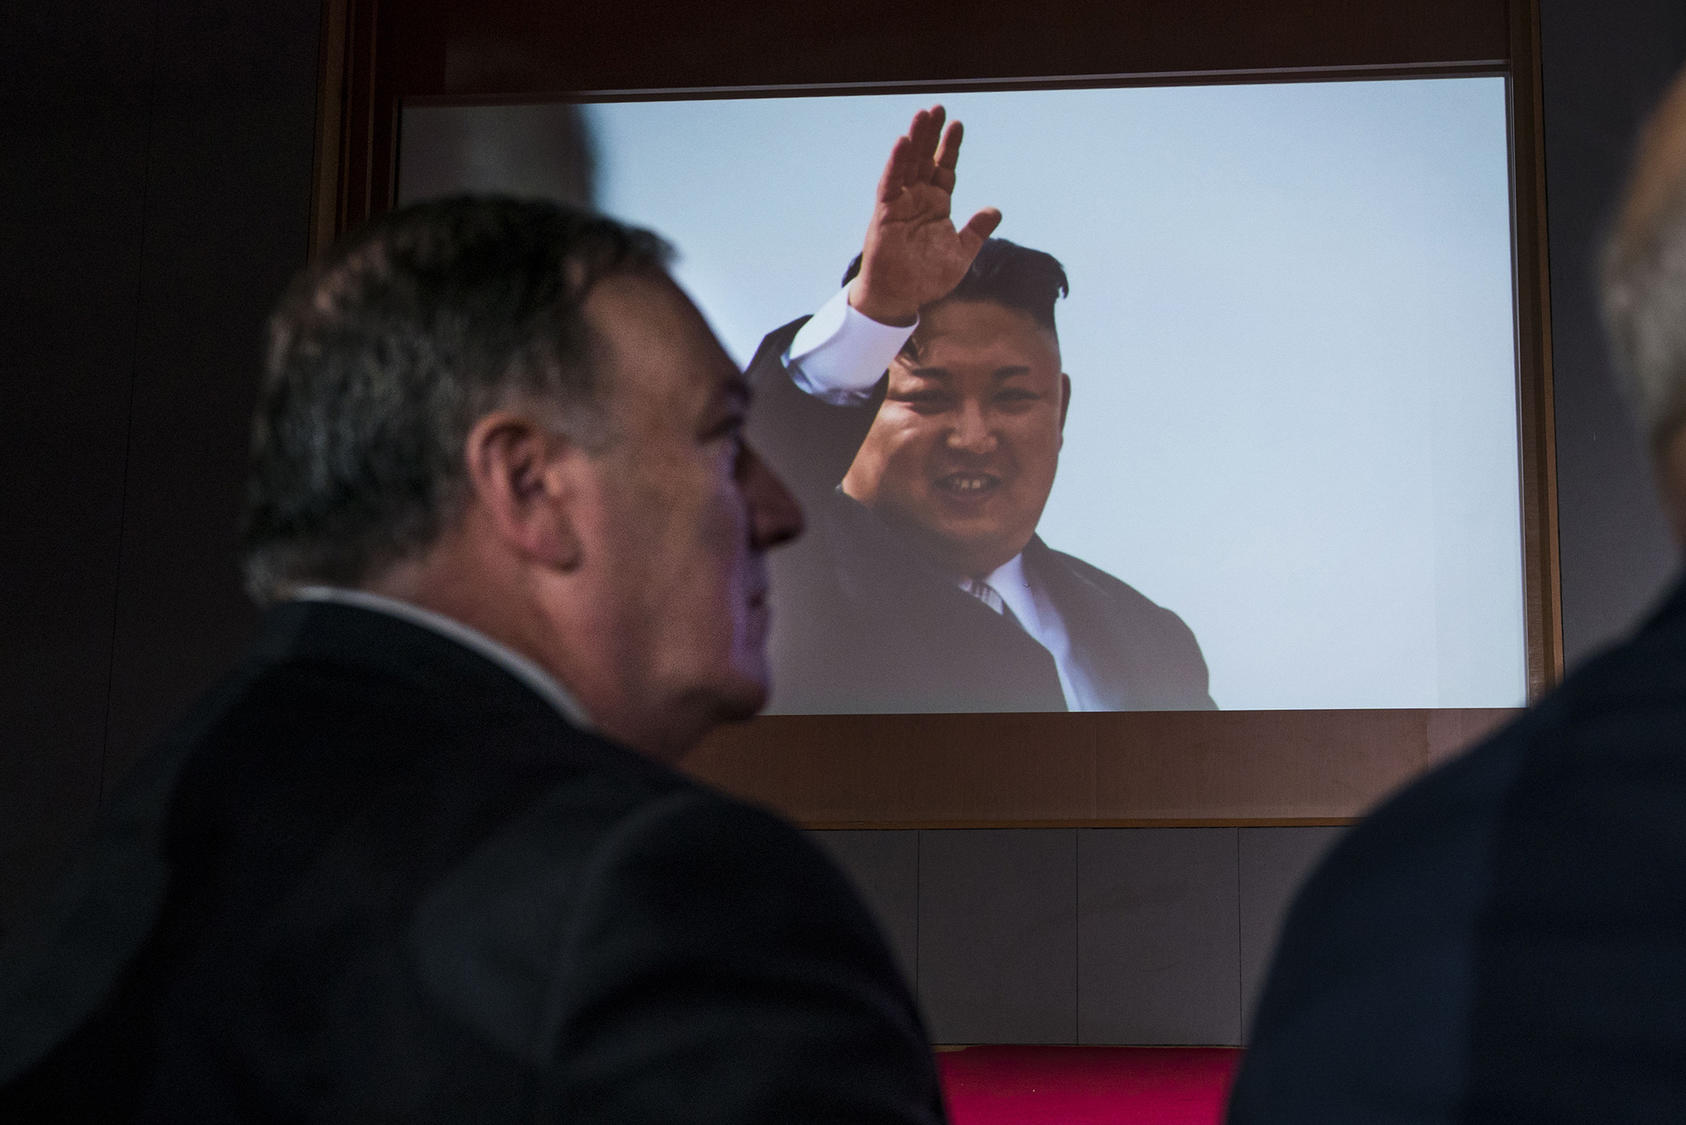 Secretary Pompeo looks on as a video displays Kim Jong Un before President Donald Trump's news conference on Sentosa Island in Singapore, June 12, 2018. (Doug Mills/The New York Times)